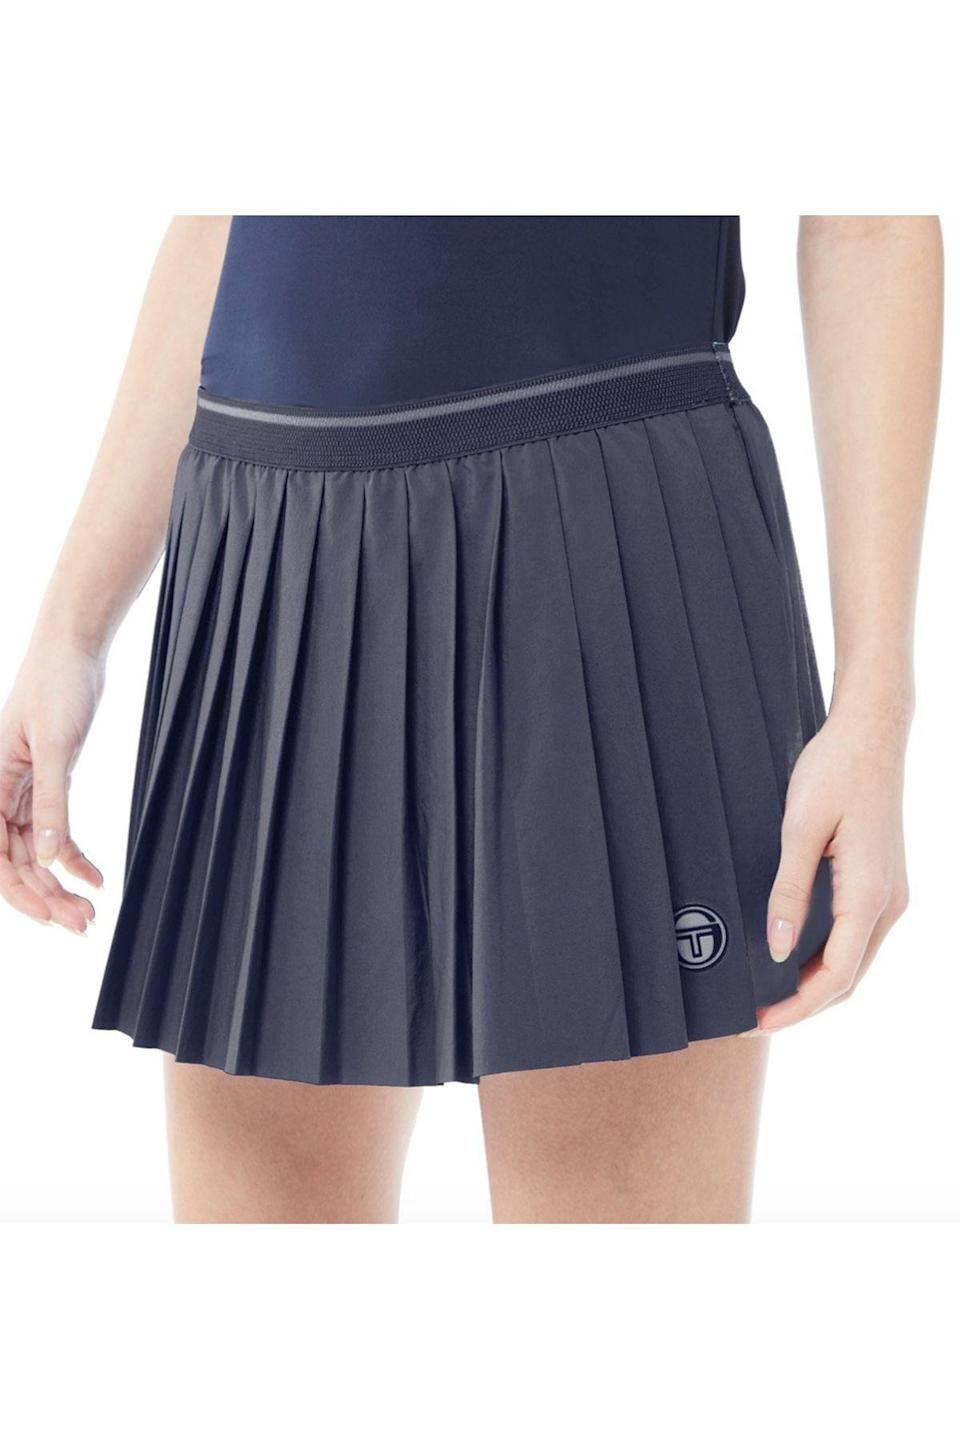 """<p><strong>Sergio Tacchini</strong></p><p>sergiotacchini.com</p><p><strong>$50.00</strong></p><p><a href=""""https://www.sergiotacchini.com/collections/womens-new-arrivals/products/tcp-skort-night-sky-blanc-de-blanc?variant=33084482060342"""" rel=""""nofollow noopener"""" target=""""_blank"""" data-ylk=""""slk:Shop Now"""" class=""""link rapid-noclick-resp"""">Shop Now</a></p><p>Founded by Italian tennis champion Sergio Tacchini in 1966, his namesake brand is known for infusing traditional styles with contemporary flair.</p>"""